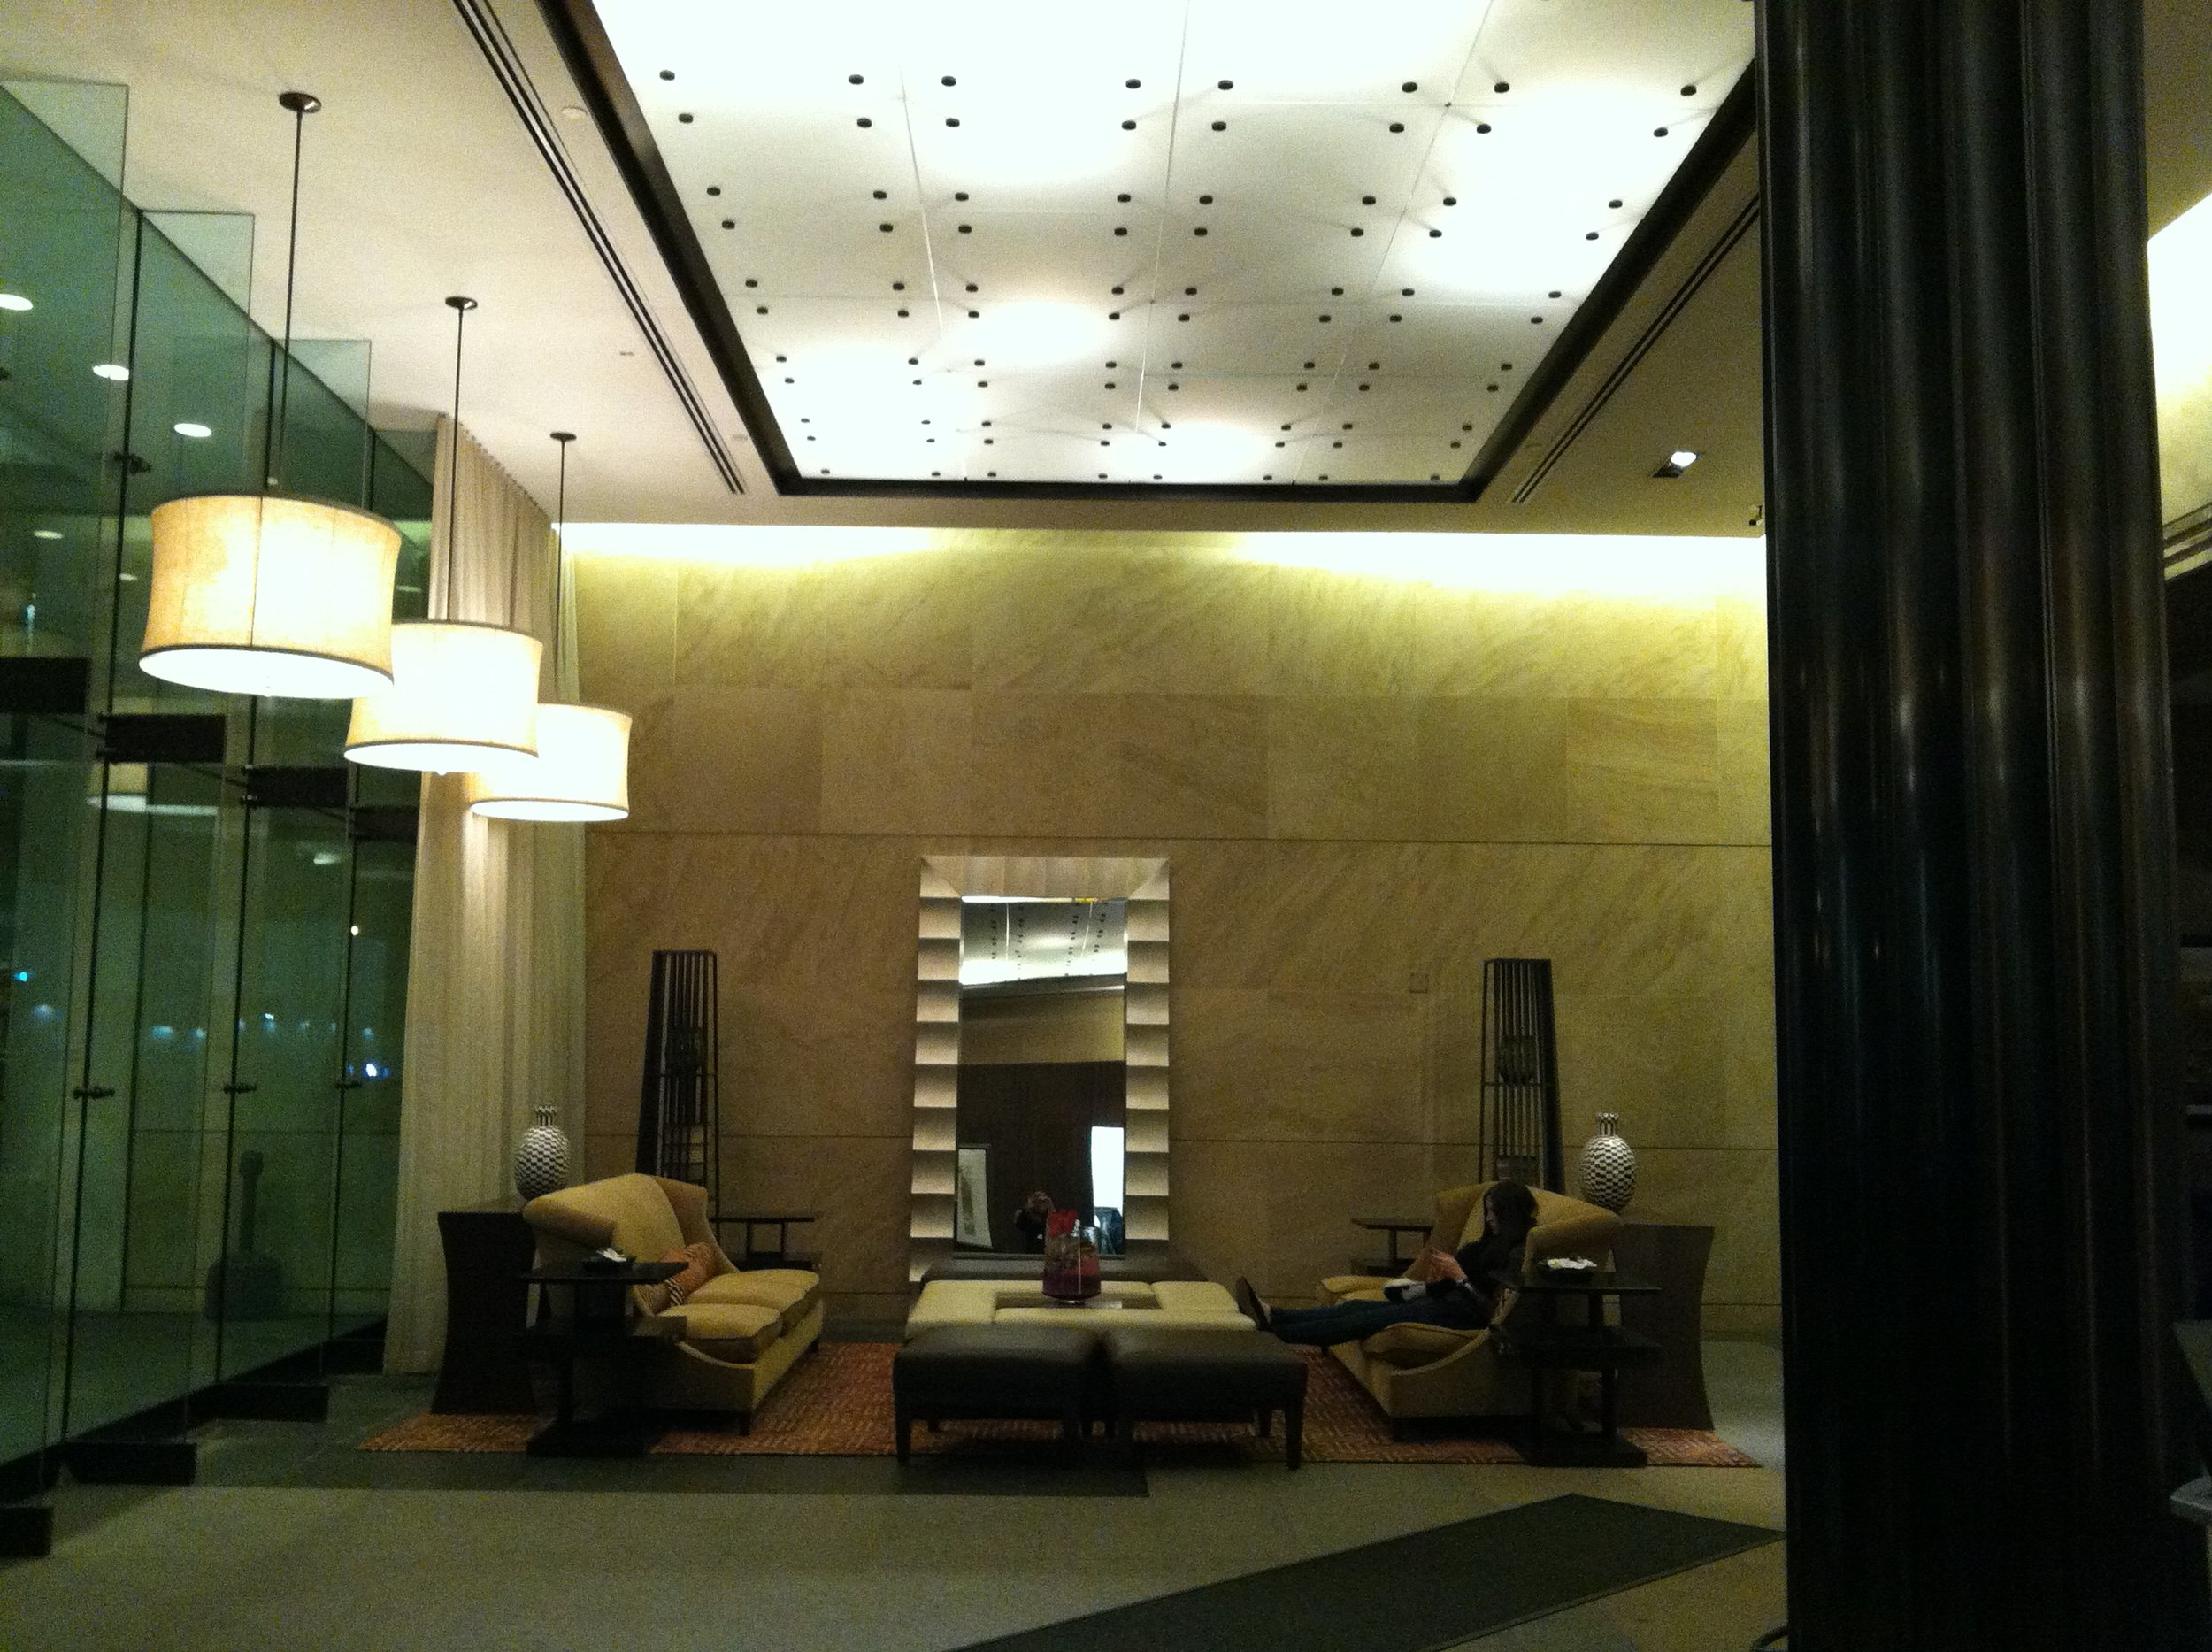 Lobby of 10 Hanover Square. Photo by Cori O'Connor.